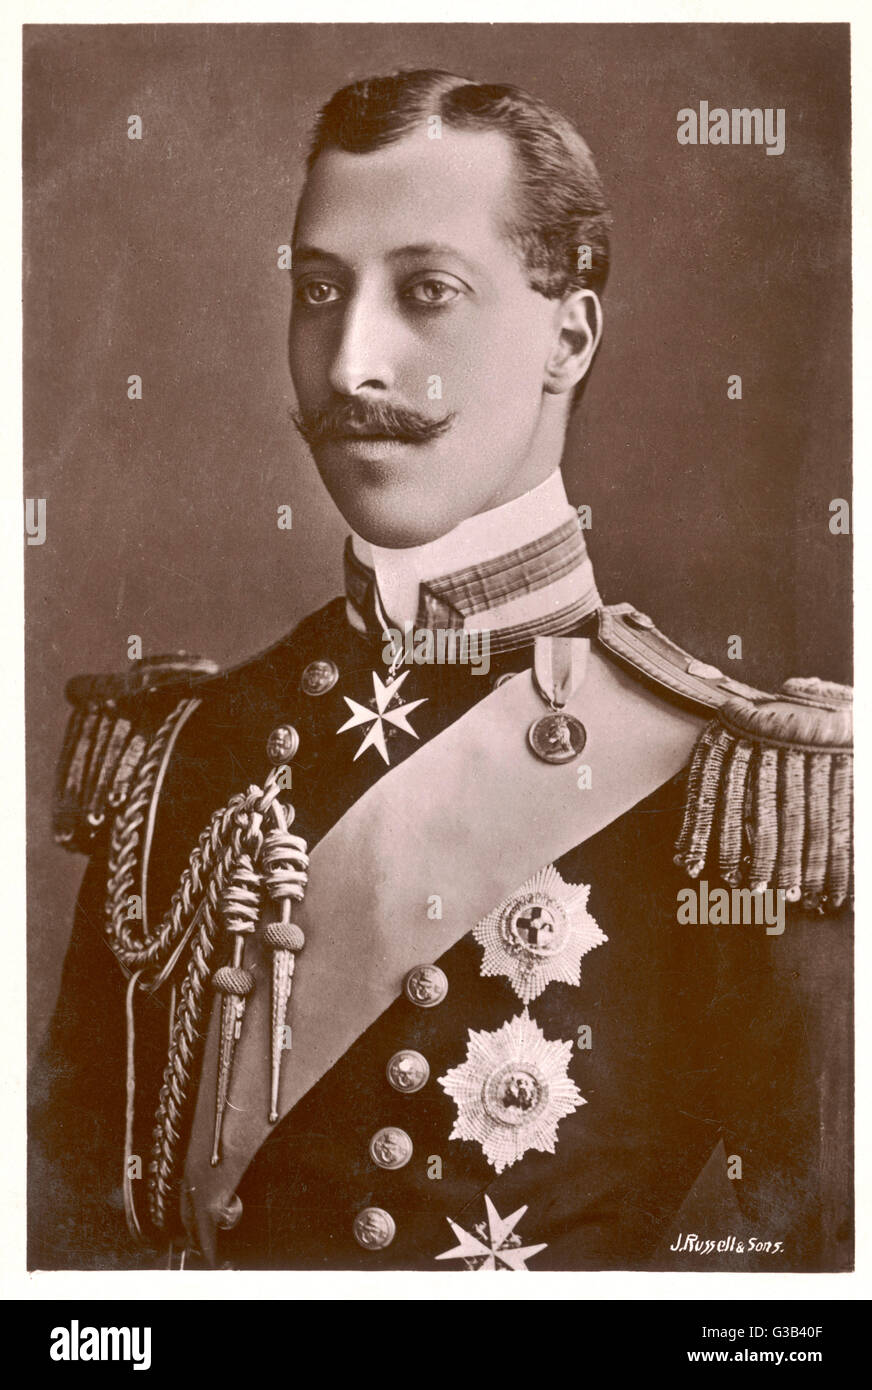 ALBERT VICTOR, DUKE OF CLARENCE AND AVONDALE  Elder son of Edward VII, died  of pneumonia at the age of 28      - Stock Image